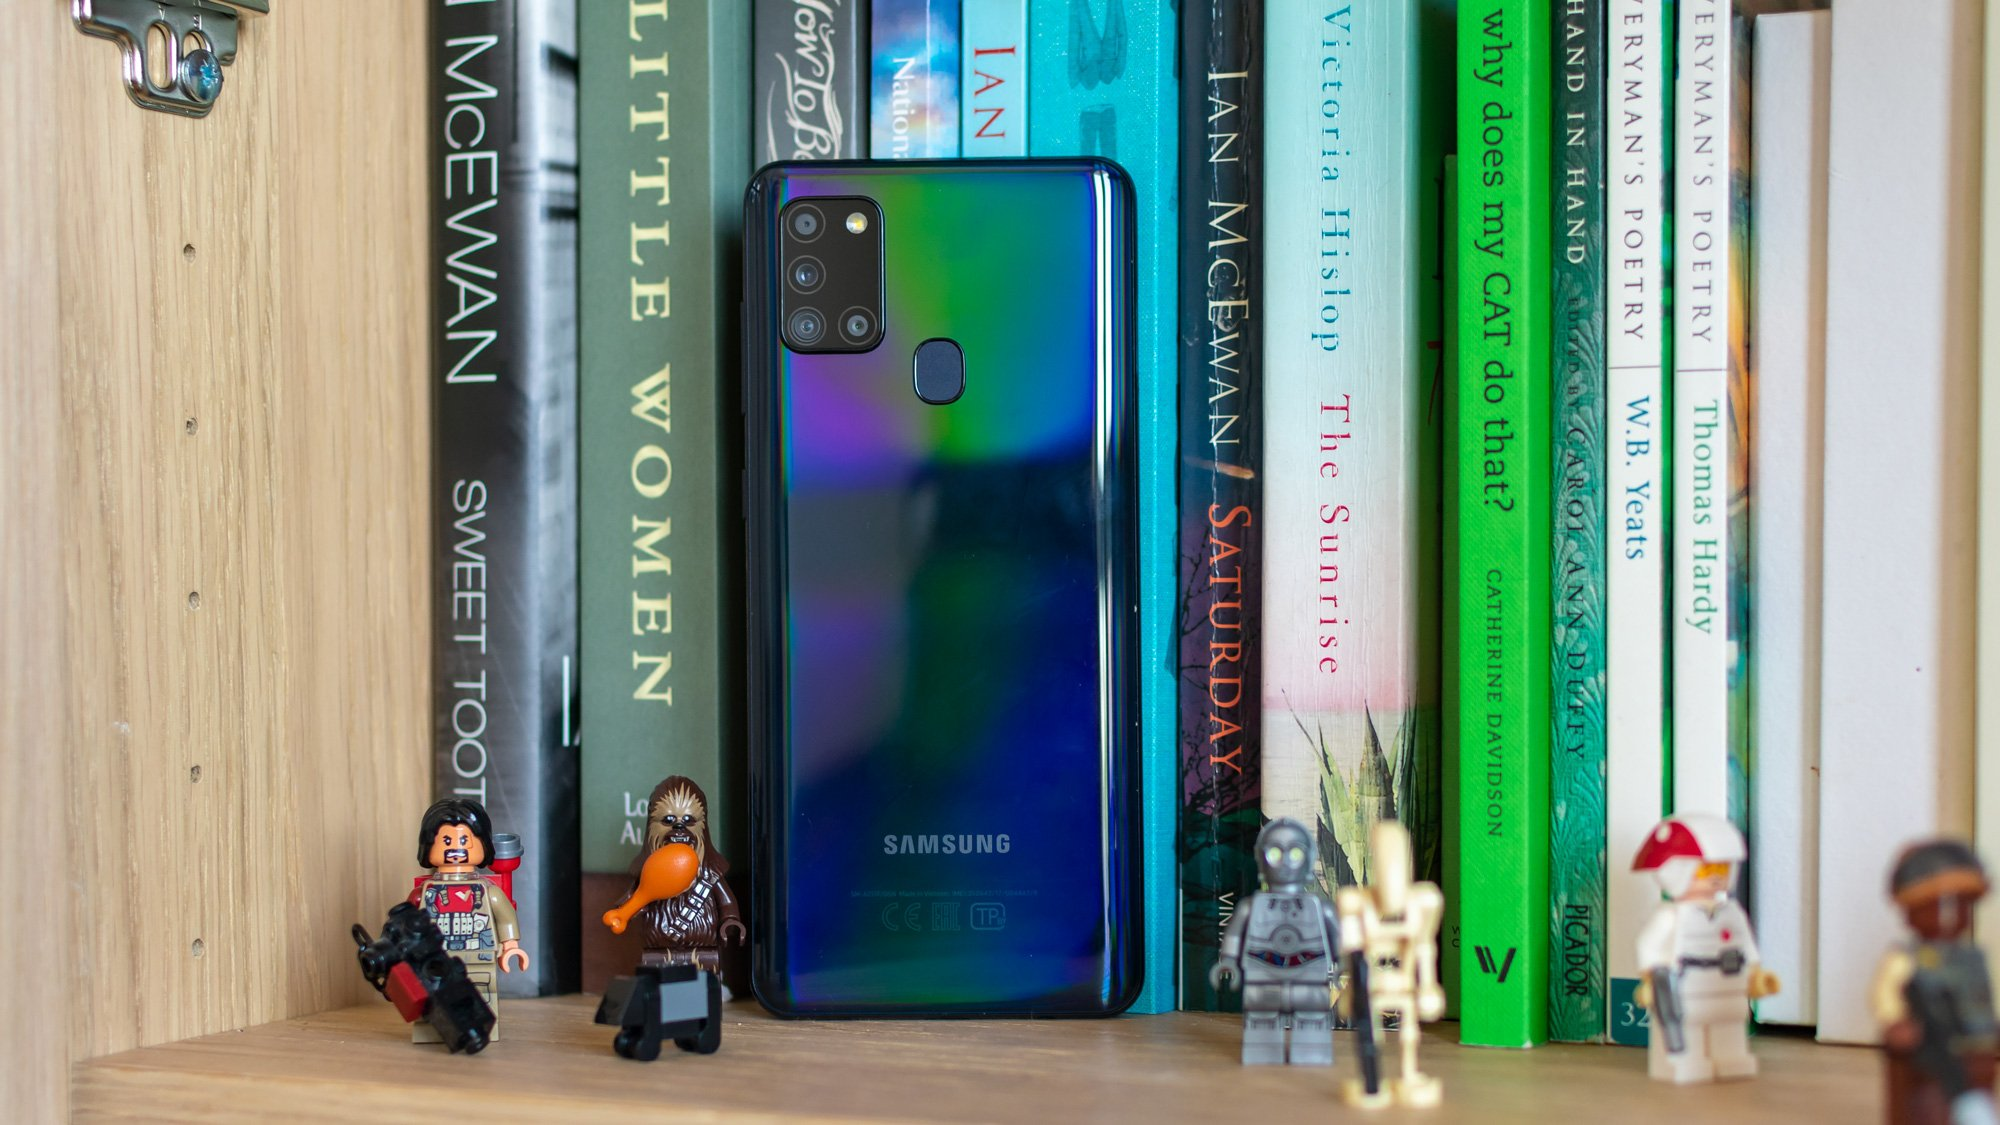 Samsung Galaxy A21s review: The 's' stands for sensational | Expert Reviews